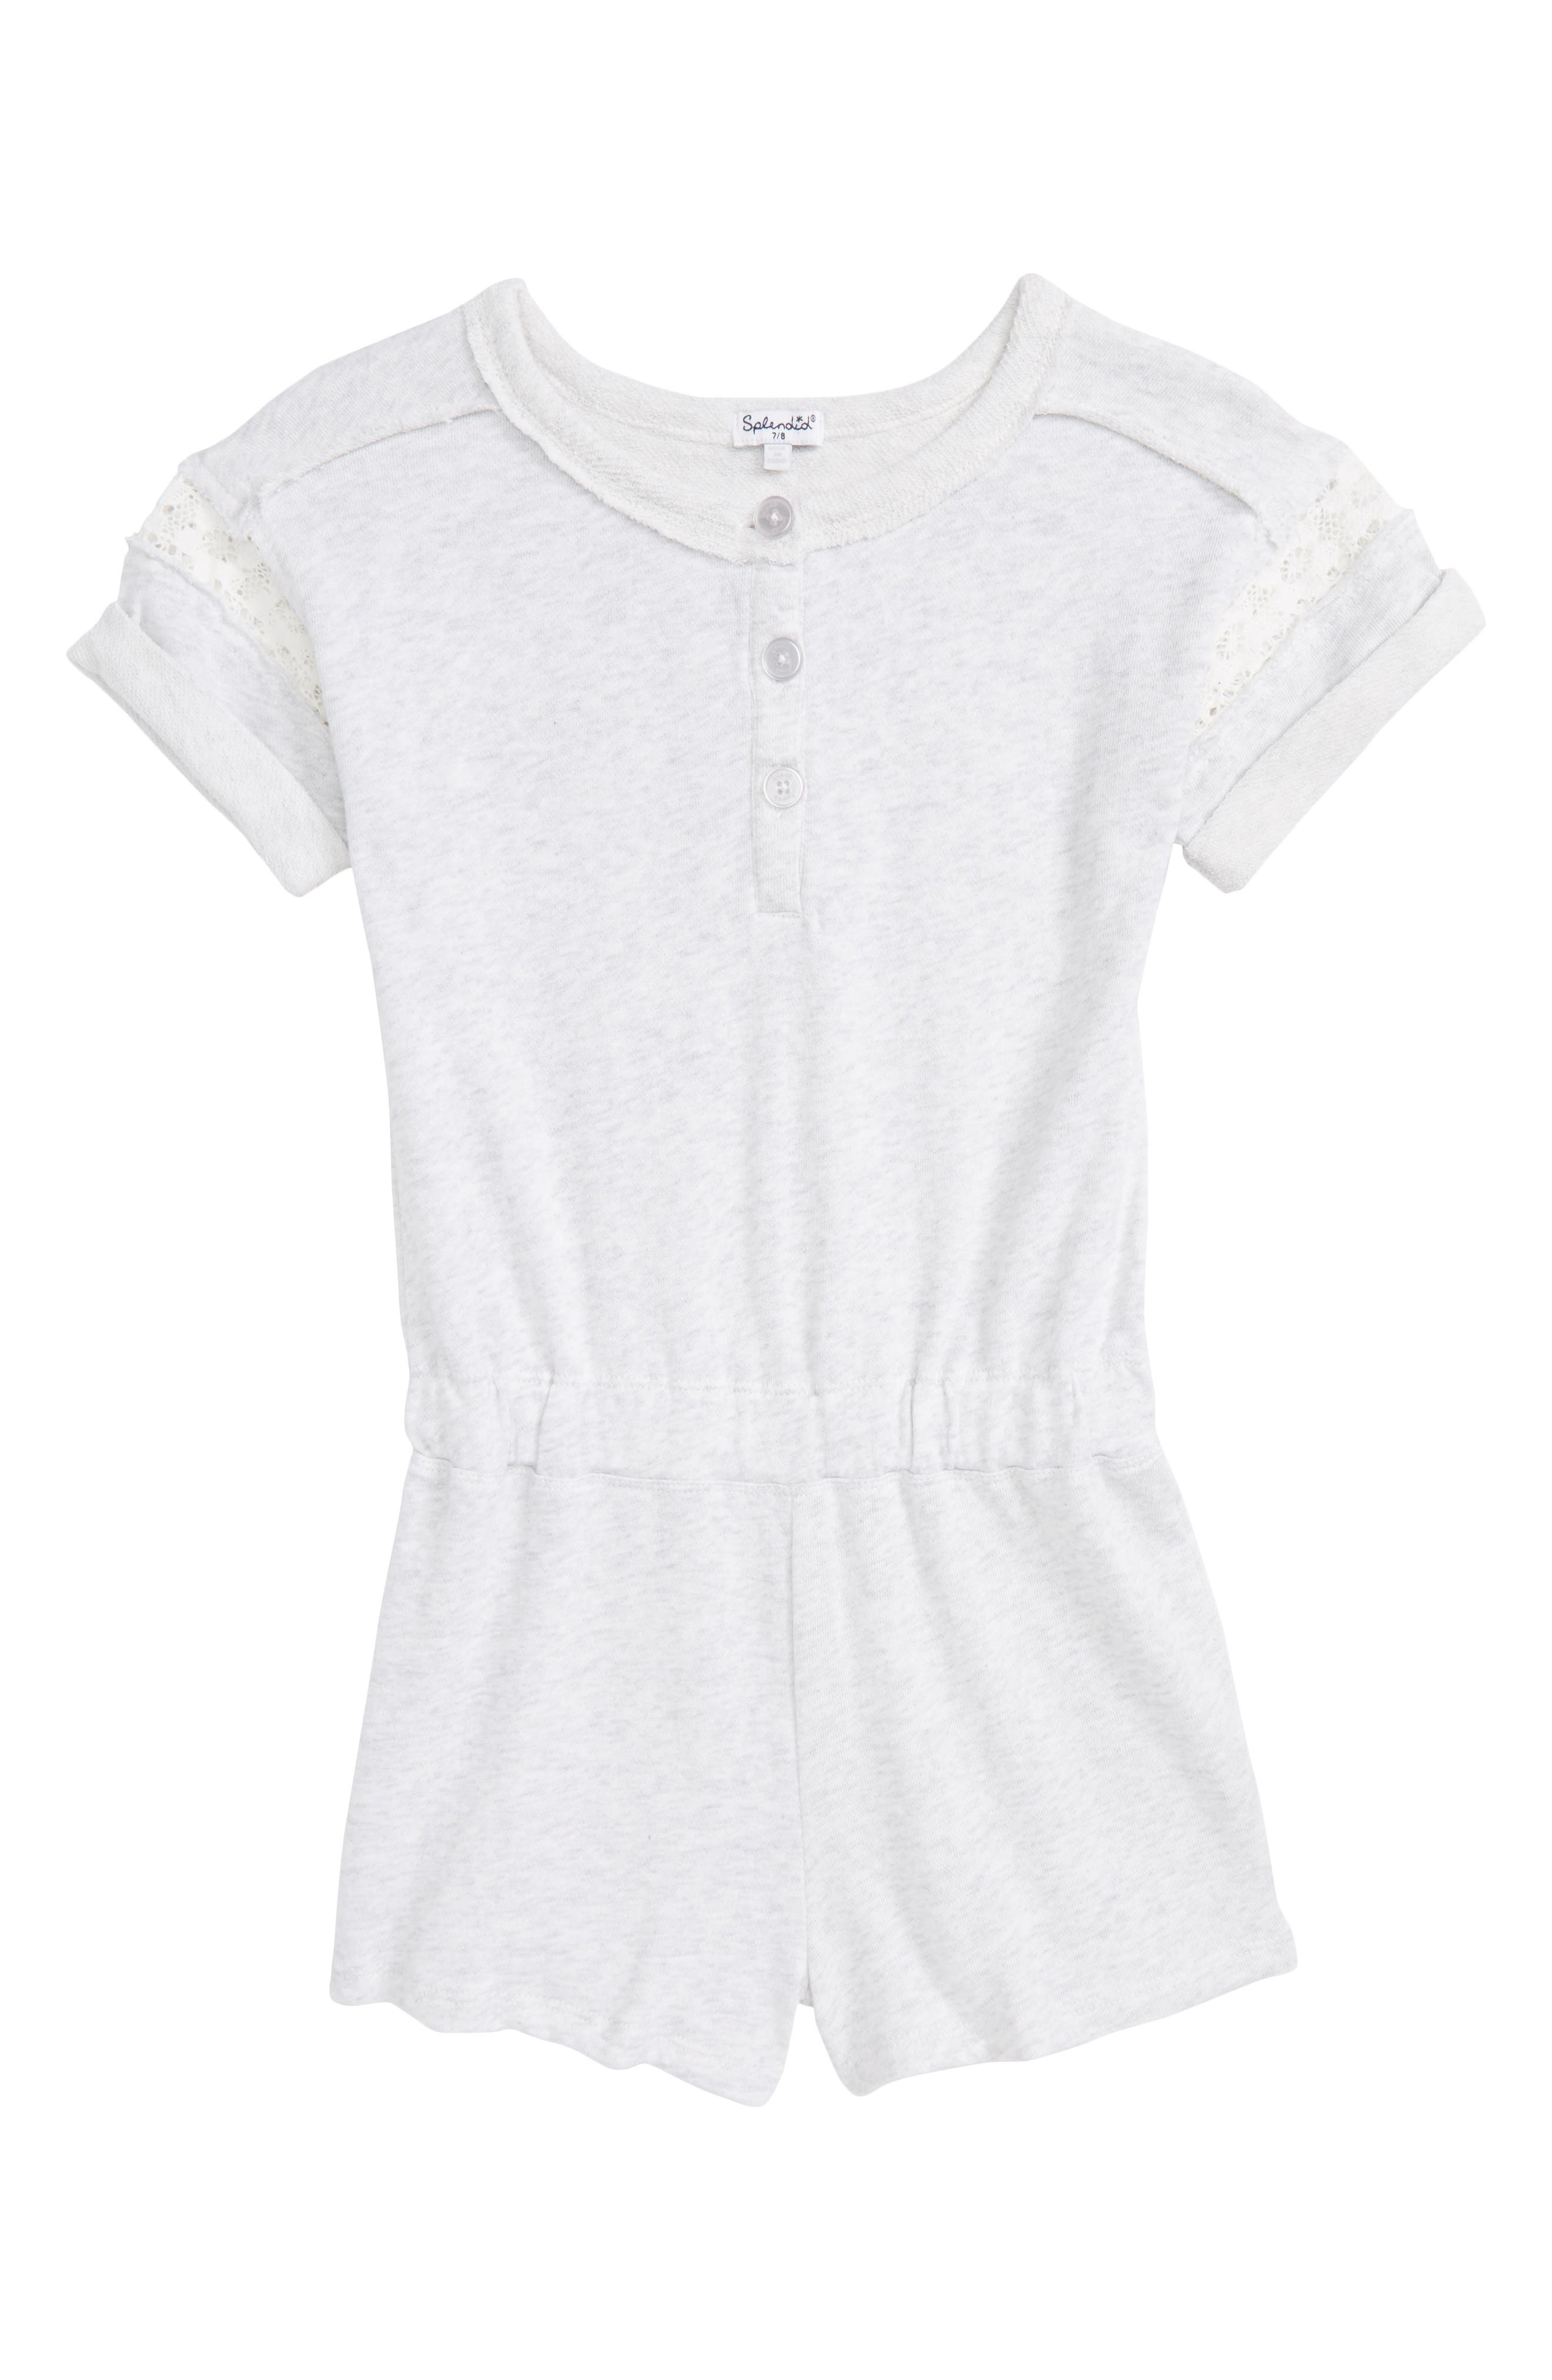 French Terry Romper,                             Main thumbnail 1, color,